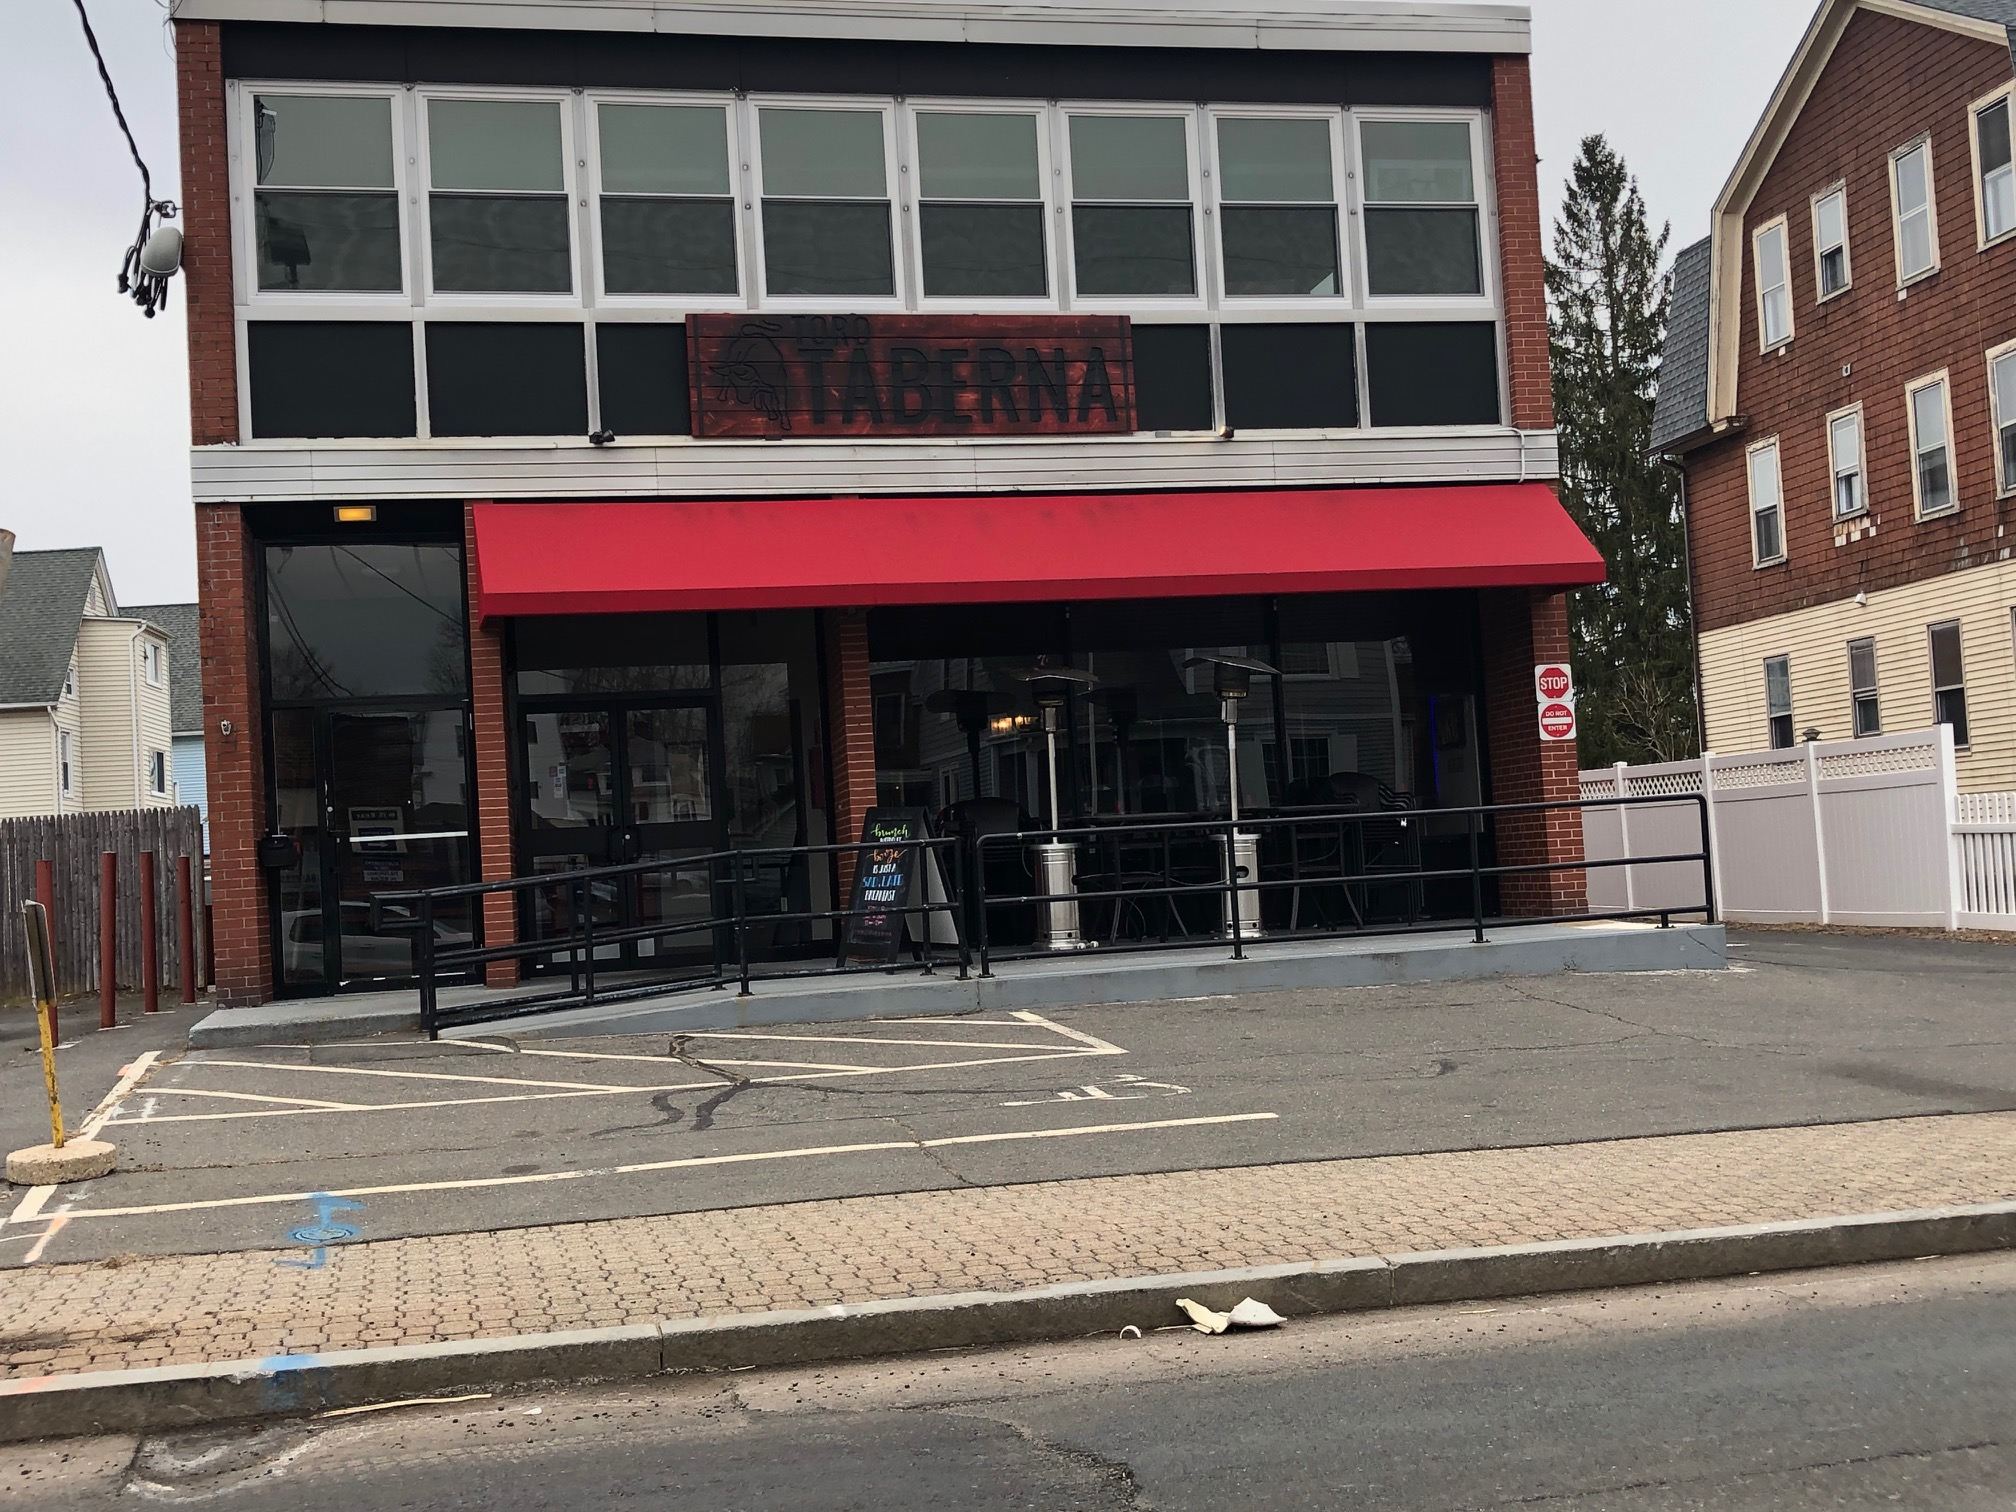 Peck N Pour - Formerly Brownstone | West Hartford, CT